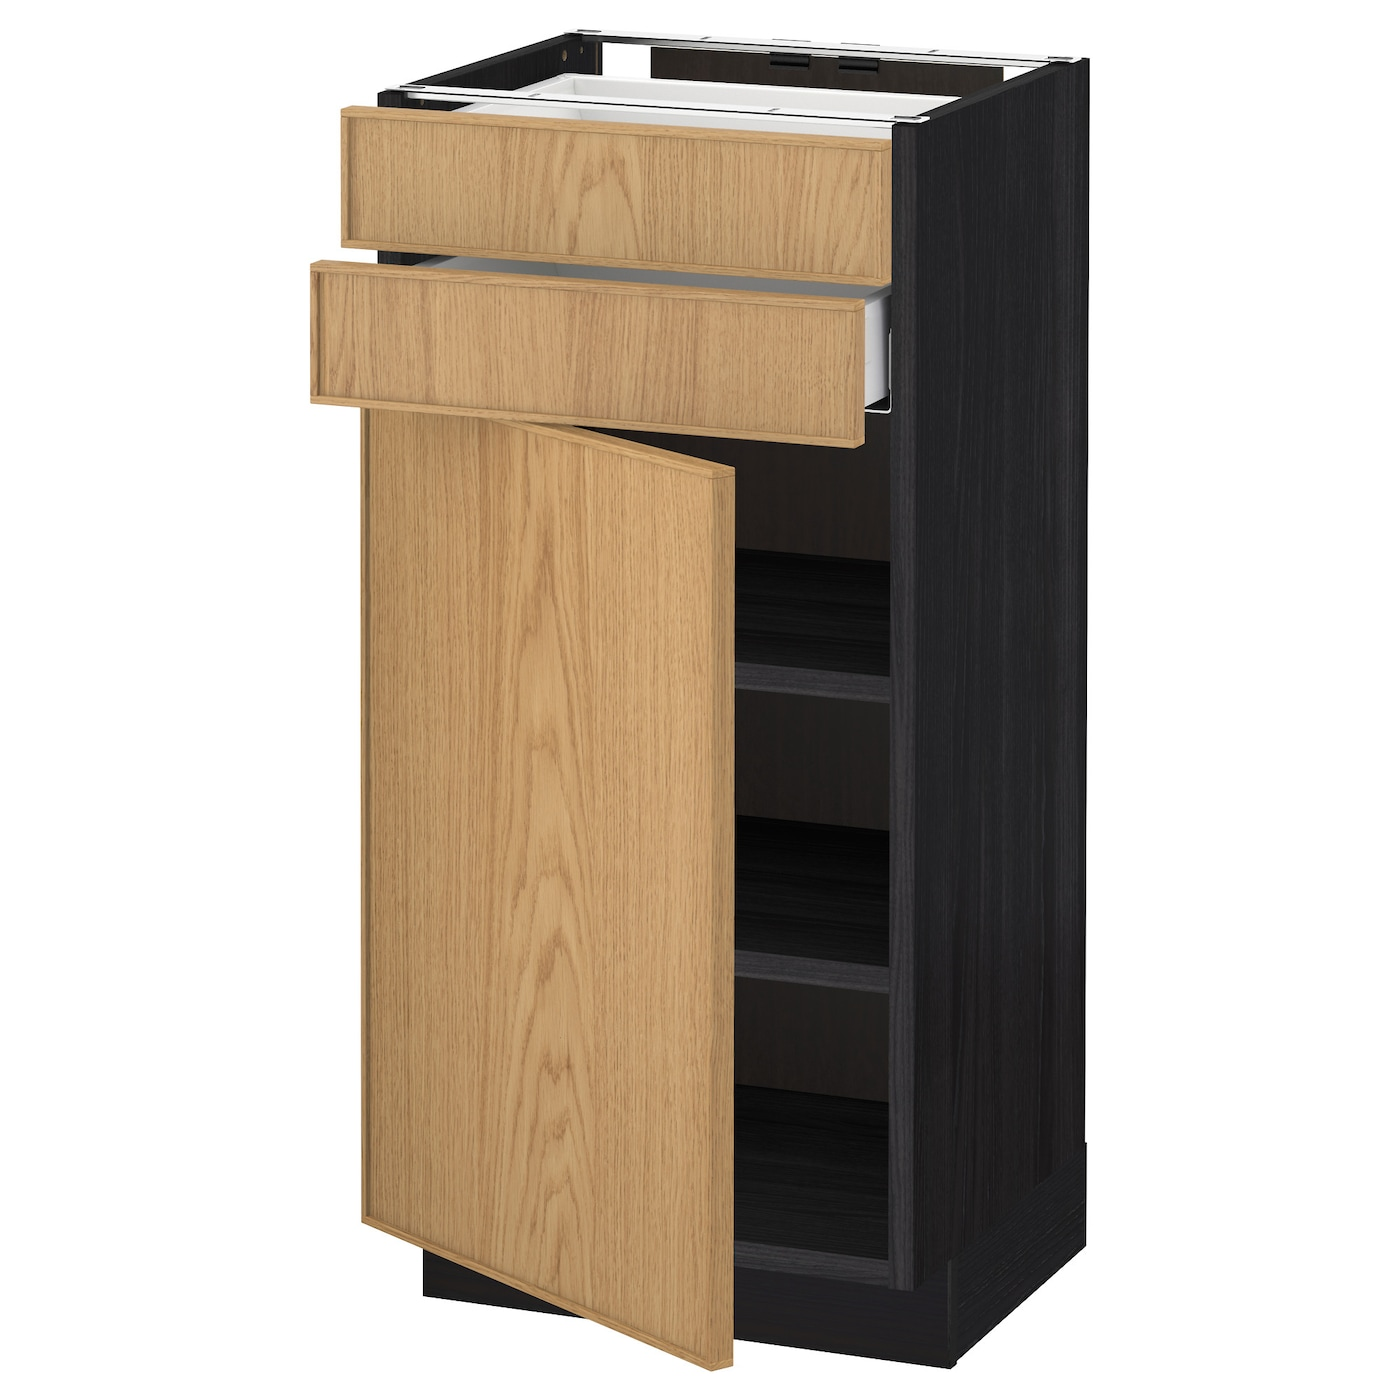 kitchen drawer cabinet base metod maximera base cabinet w door 2 drawers black ekestad 4715